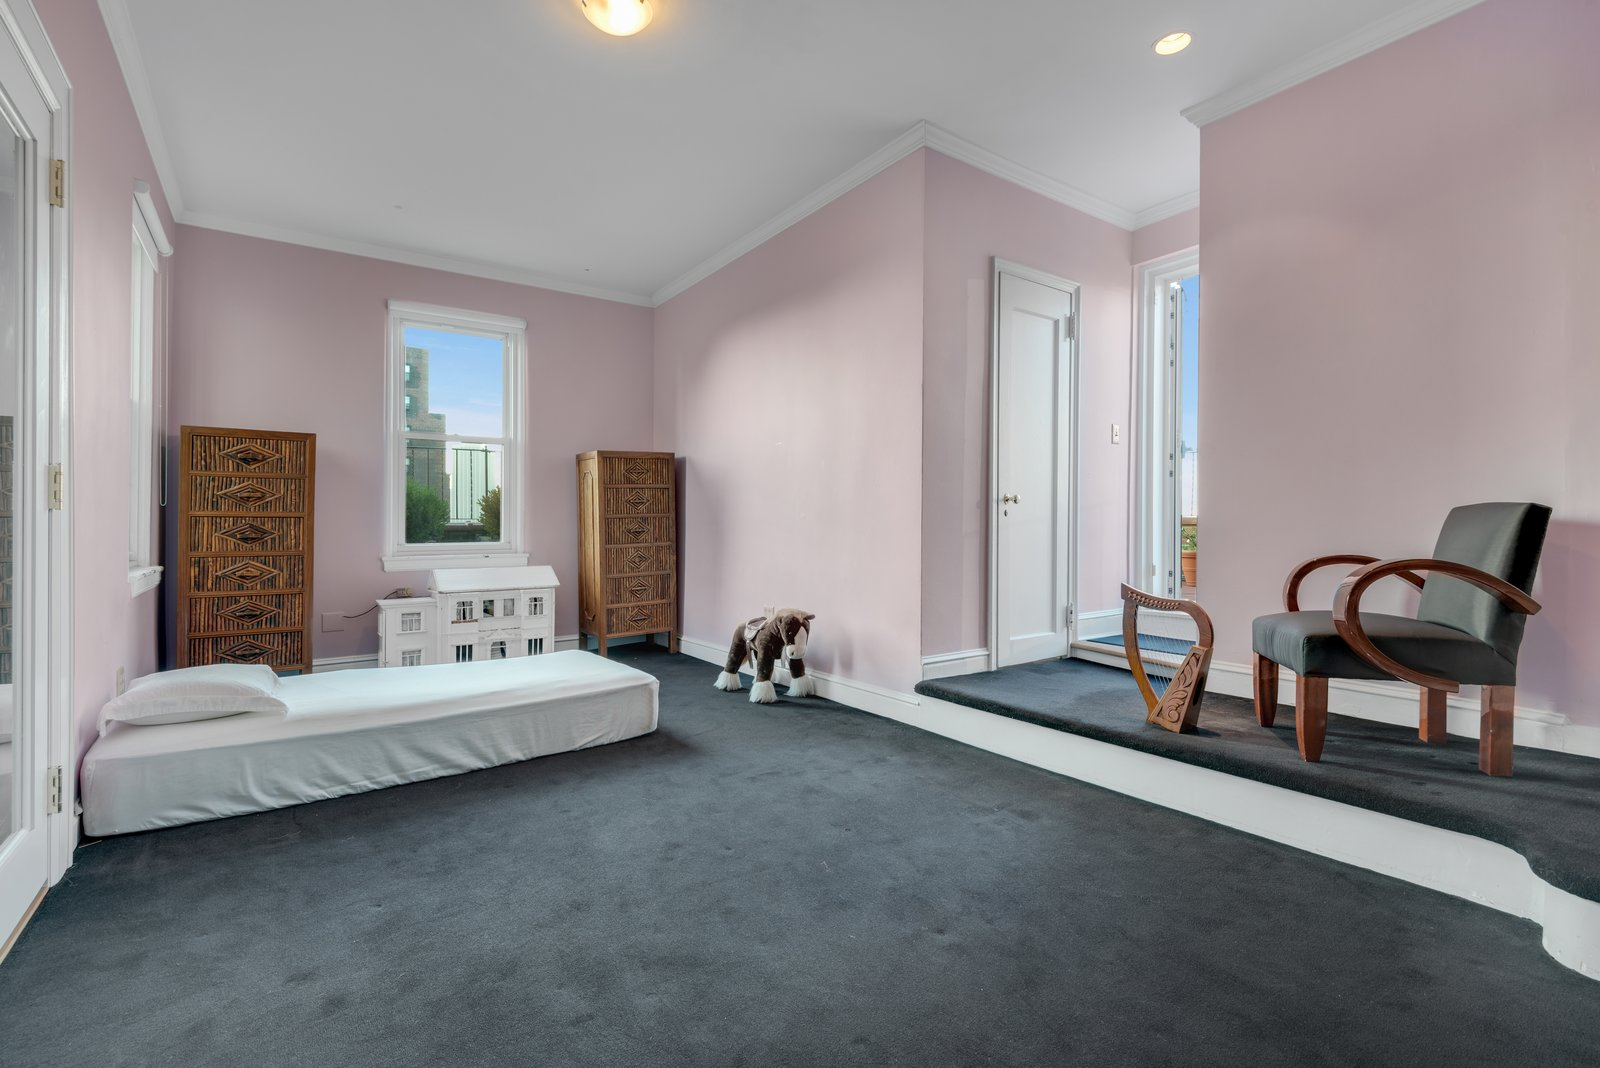 Kids Room, Girl Gender, Dresser, Carpet Floor, Chair, Bedroom Room Type, Bed, and Pre-Teen Age One of the other four bedrooms.   Photo 8 of 12 in Björk Puts Her Brooklyn Heights Penthouse on the Market For $9M